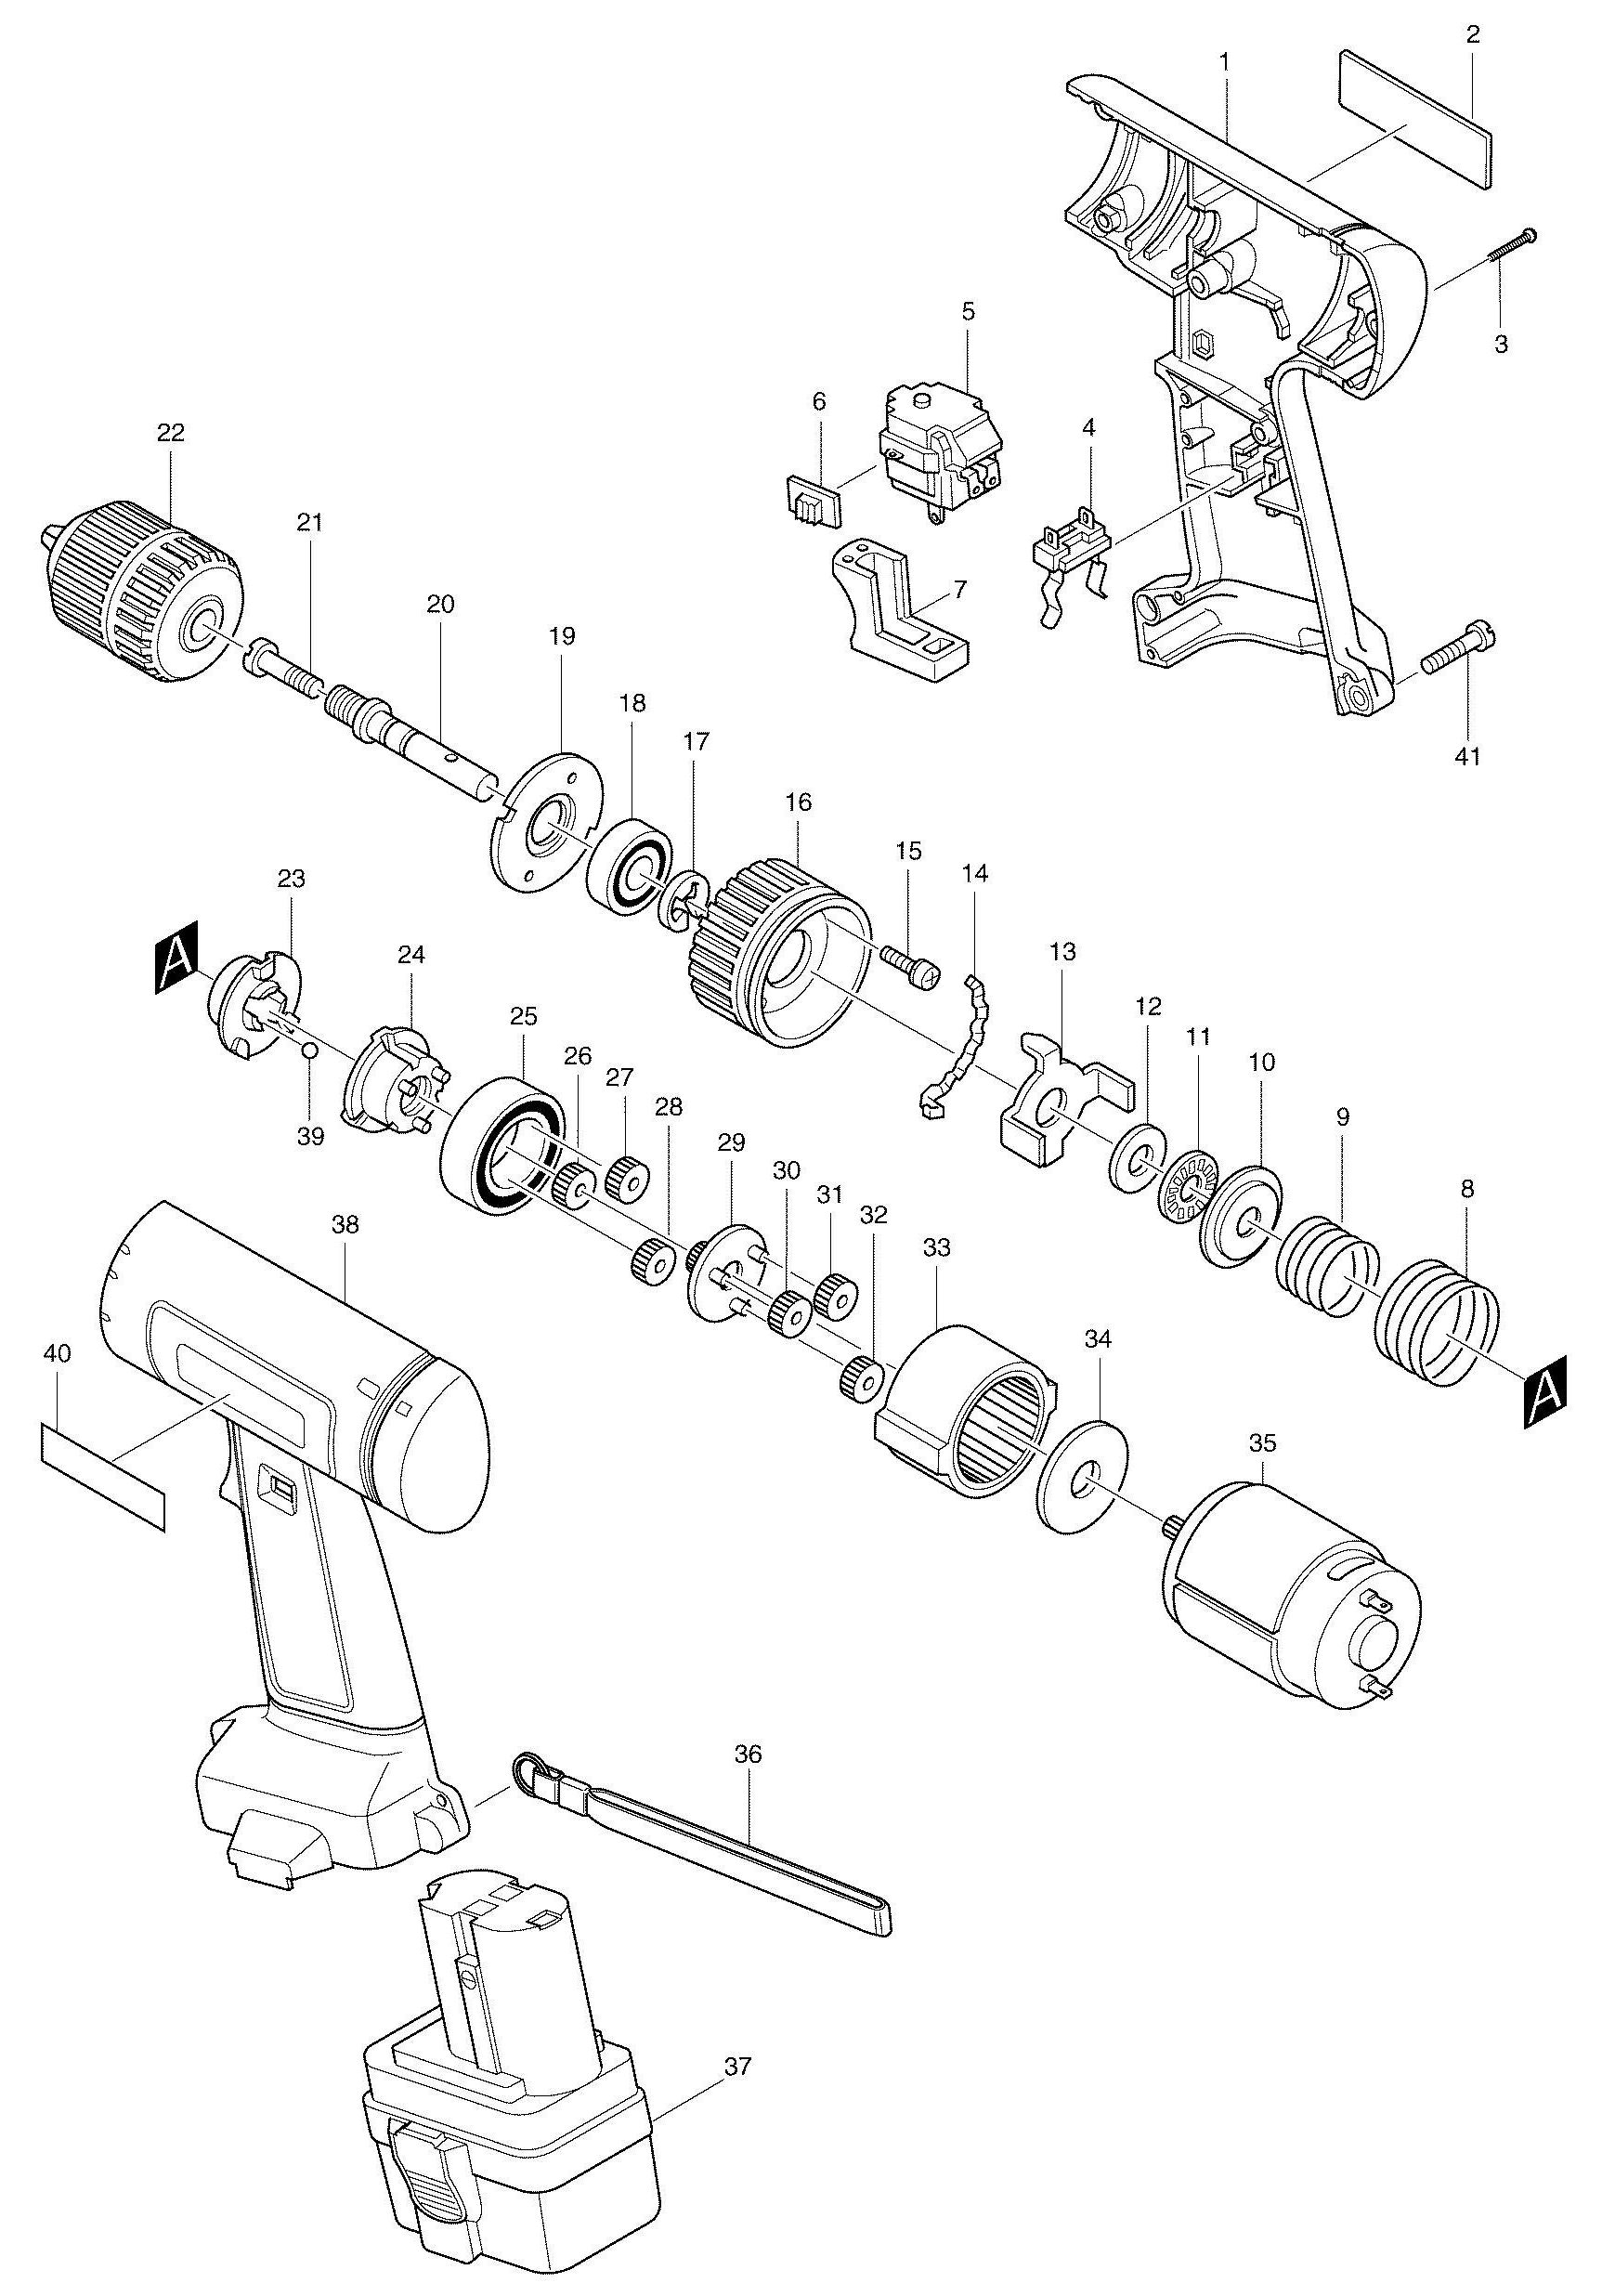 Spares for Makita 6222d Drill/driver SPARE_6222D from